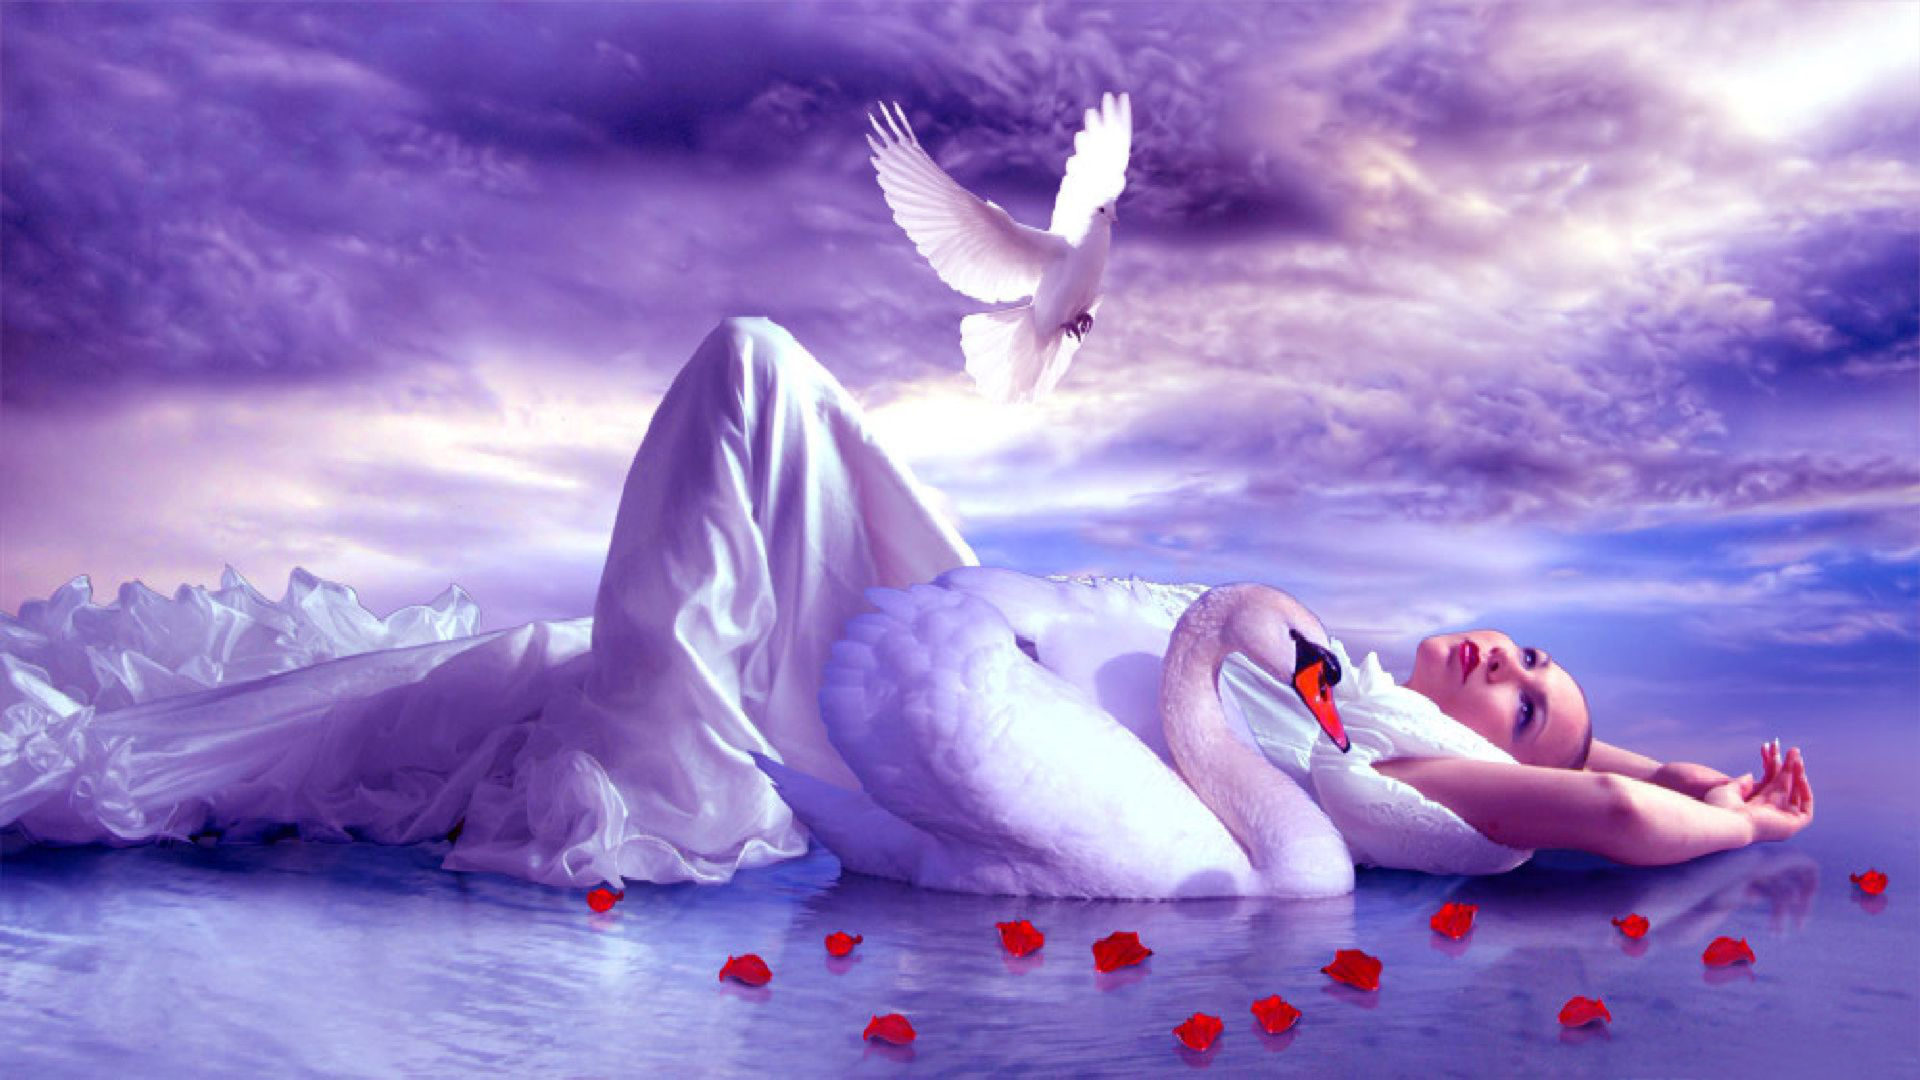 Beautiful Angels Hd Wallpapers Girl Lake Accompaniment Of A Swan And Golub Sky With White